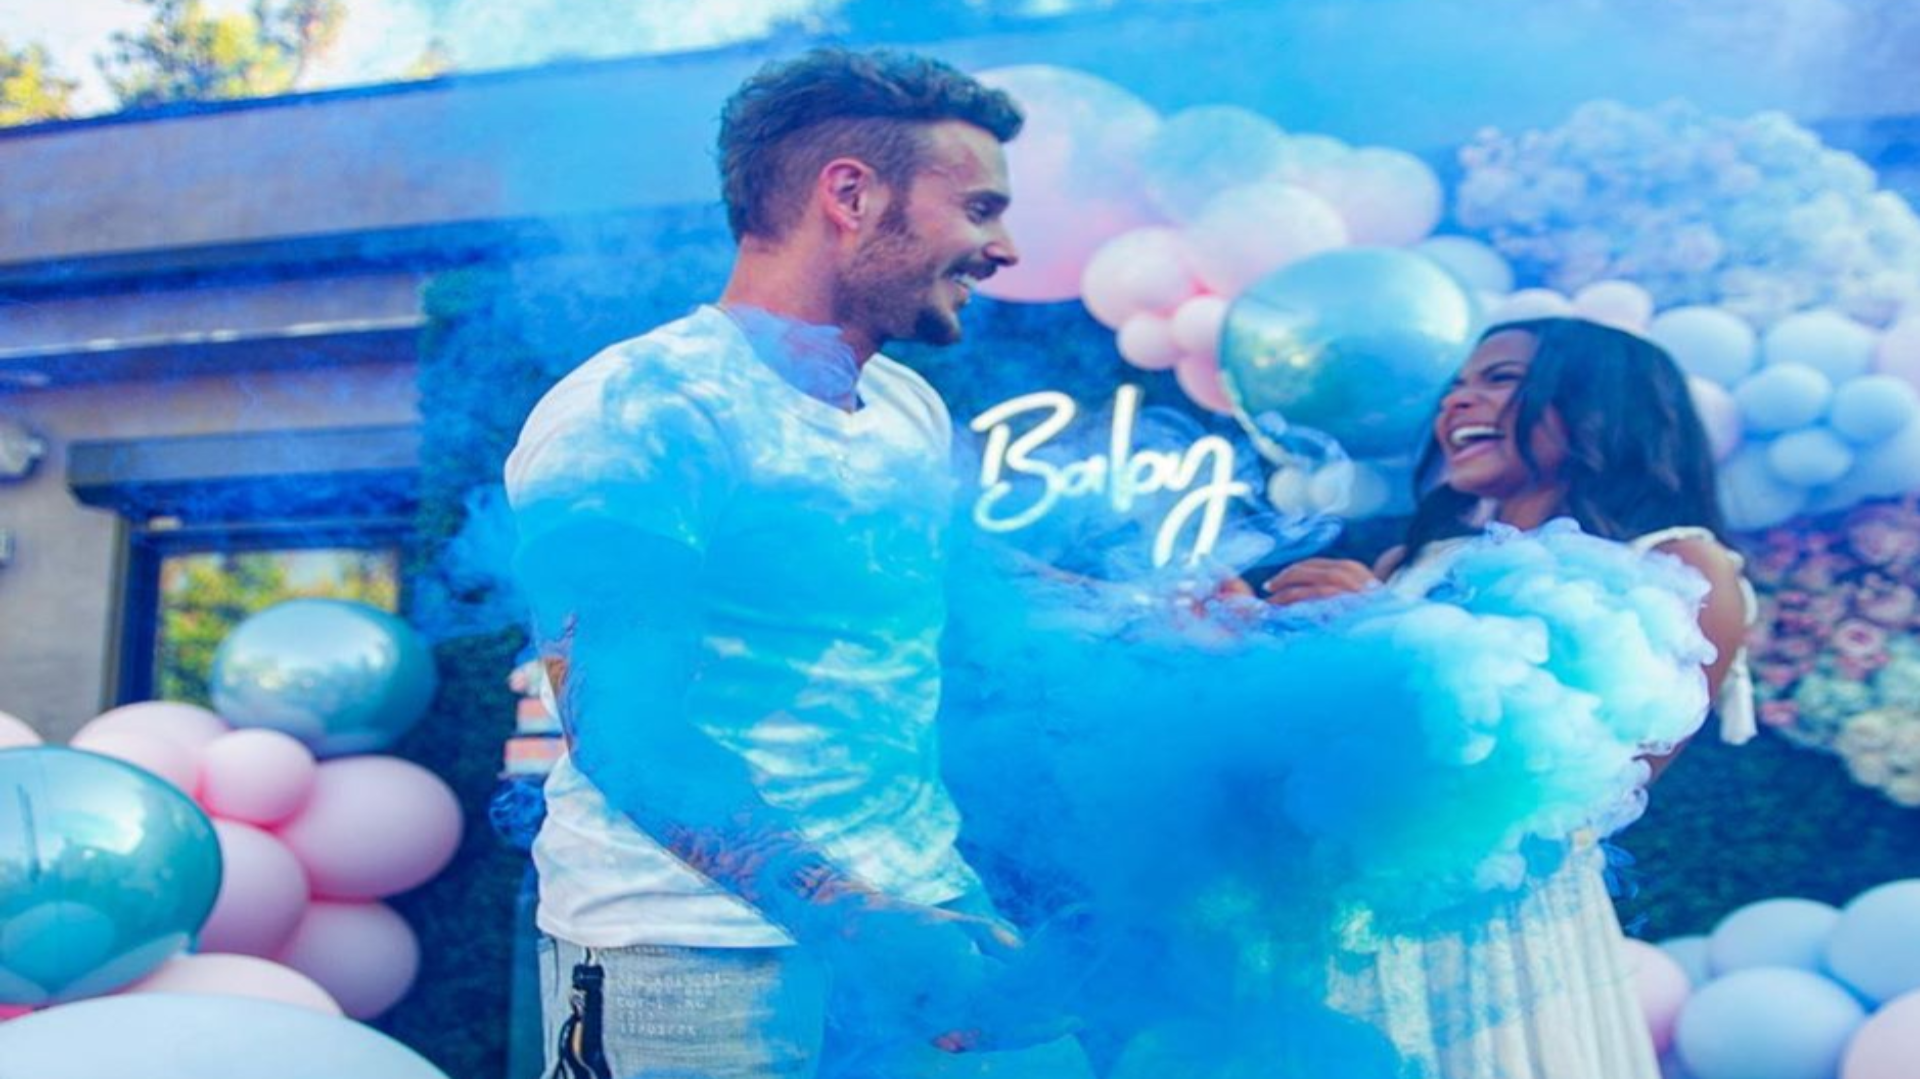 Christina Milian Announced She's Having A Baby Boy In Sweet Gender Reveal